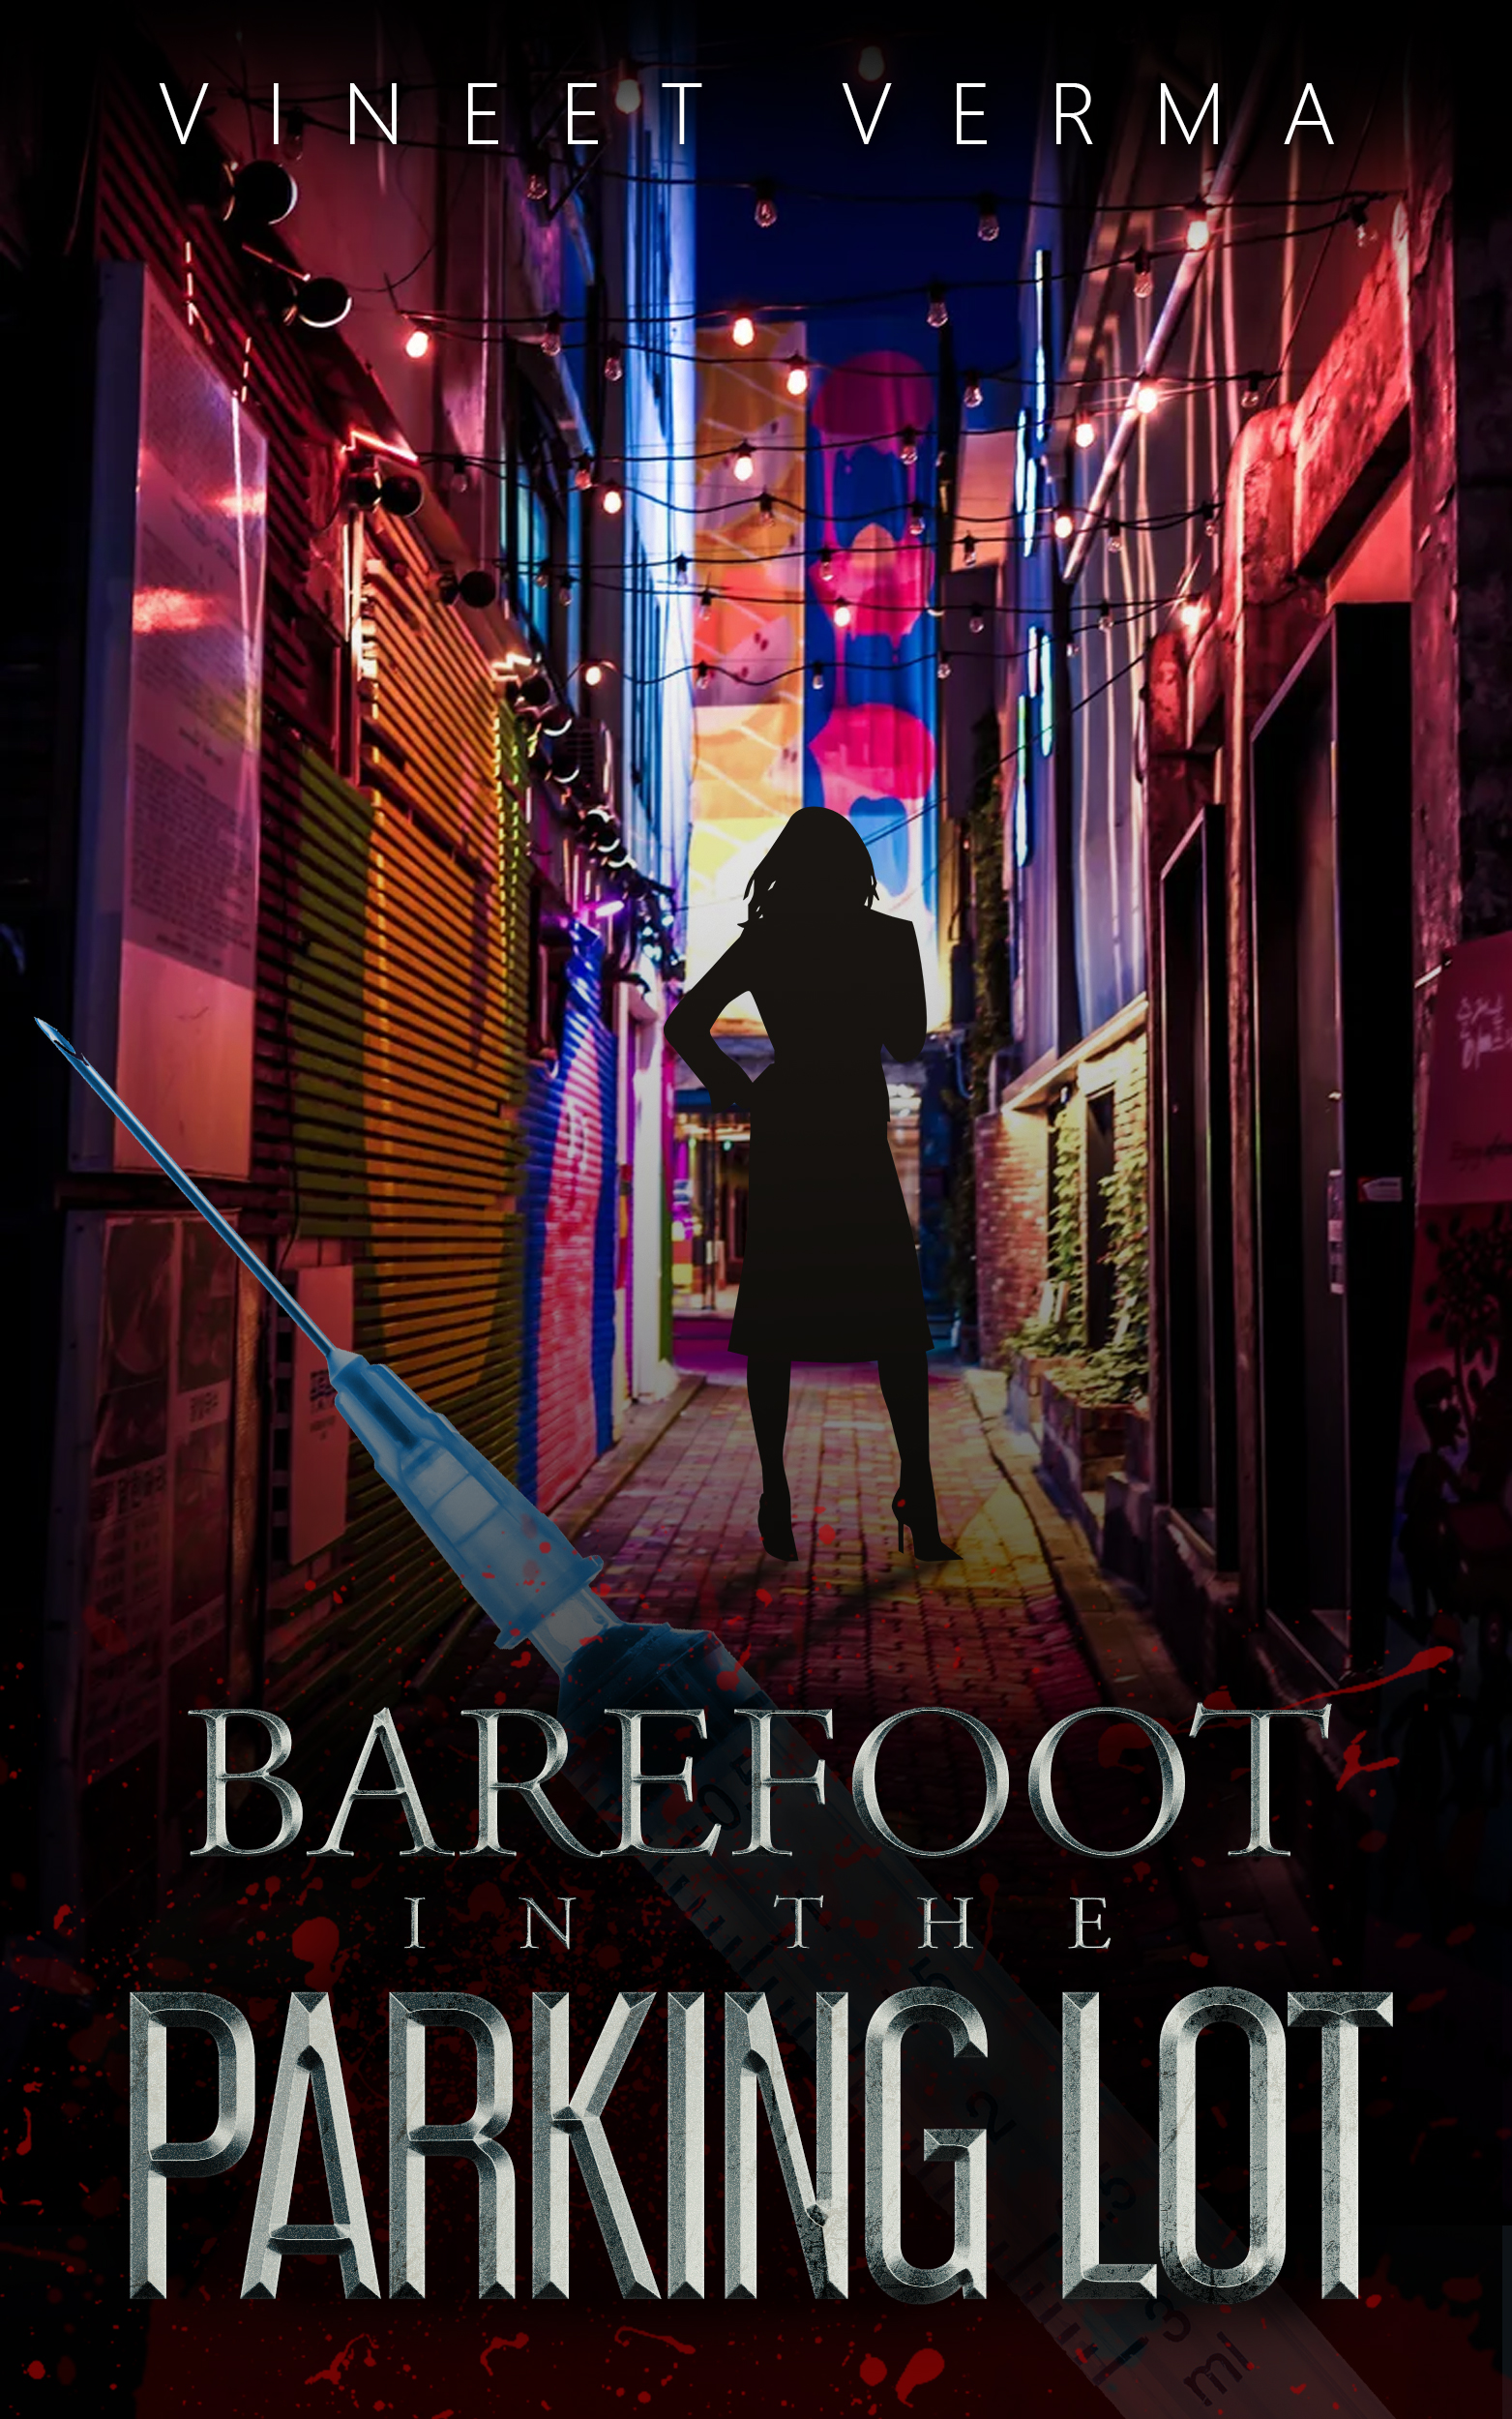 Barefoot in the Parking Lot by Vineet Verma